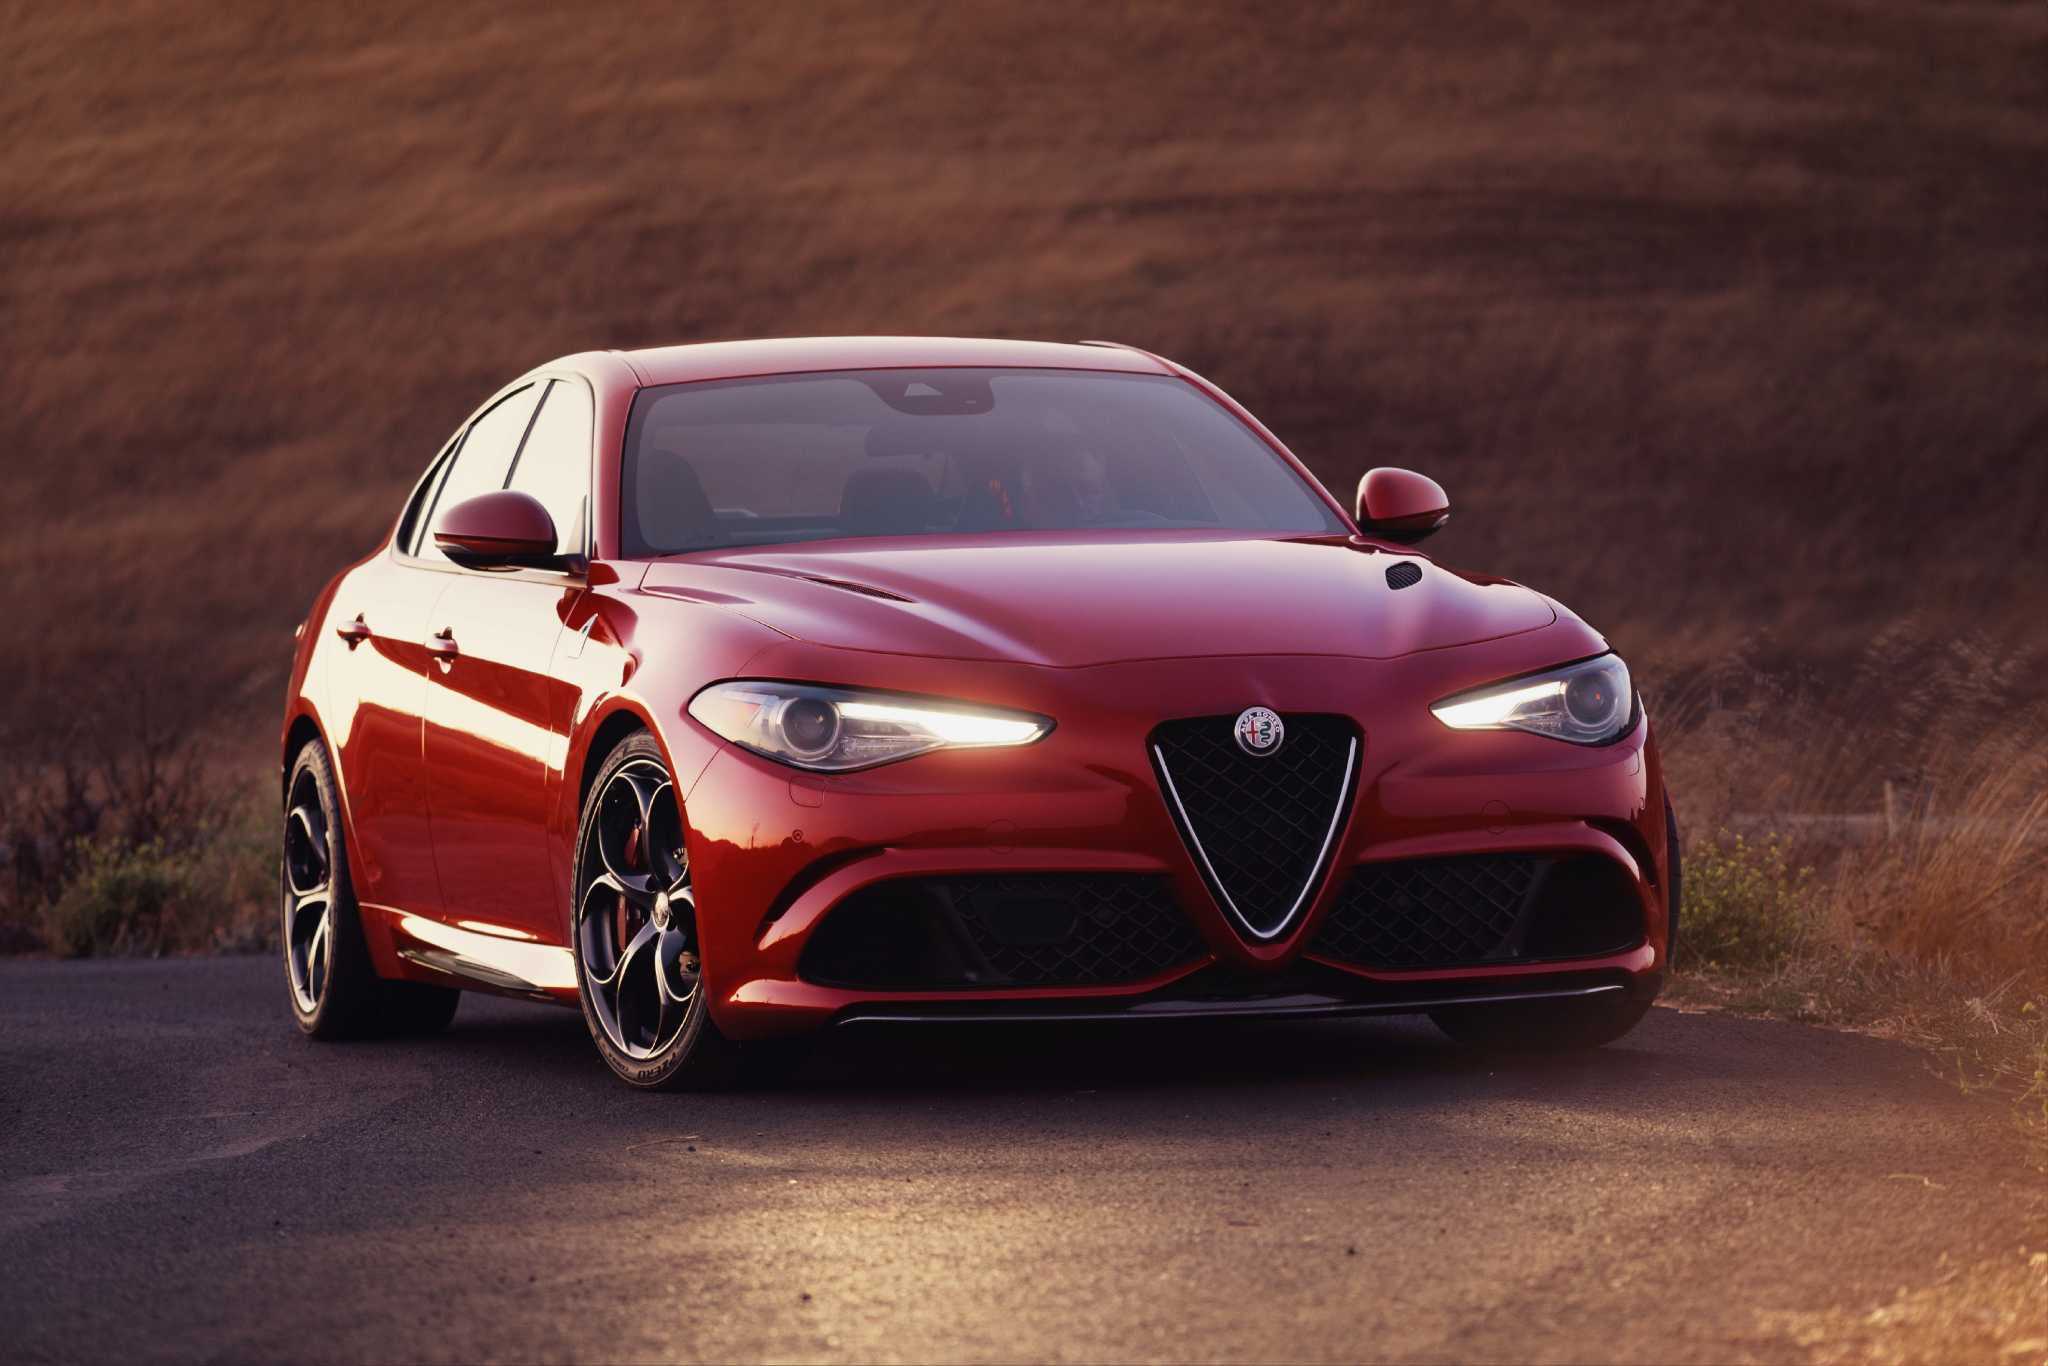 Alfa makes a 505 horsepower splash with stunning Giulia's U.S. debut